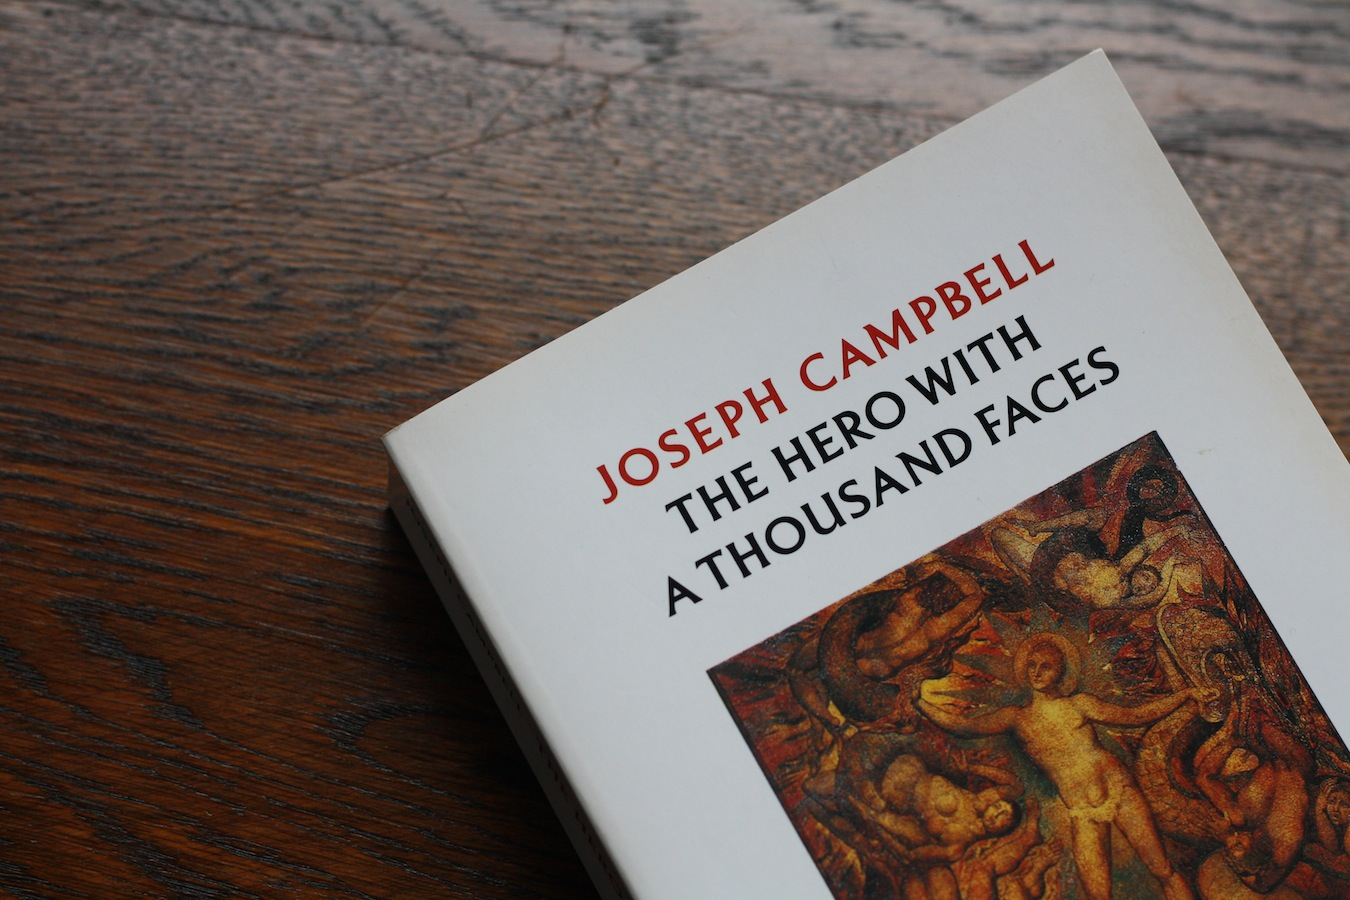 an introduction to the analysis of a hero by joseph campbell It's hard for me to know how to feel about the hero with a thousand faces joseph campbell's construction-and-deconstruction of the monomyth has hugely influenced storytelling, and rightly earned its central position in any discussion of story structure and cultural analysis.